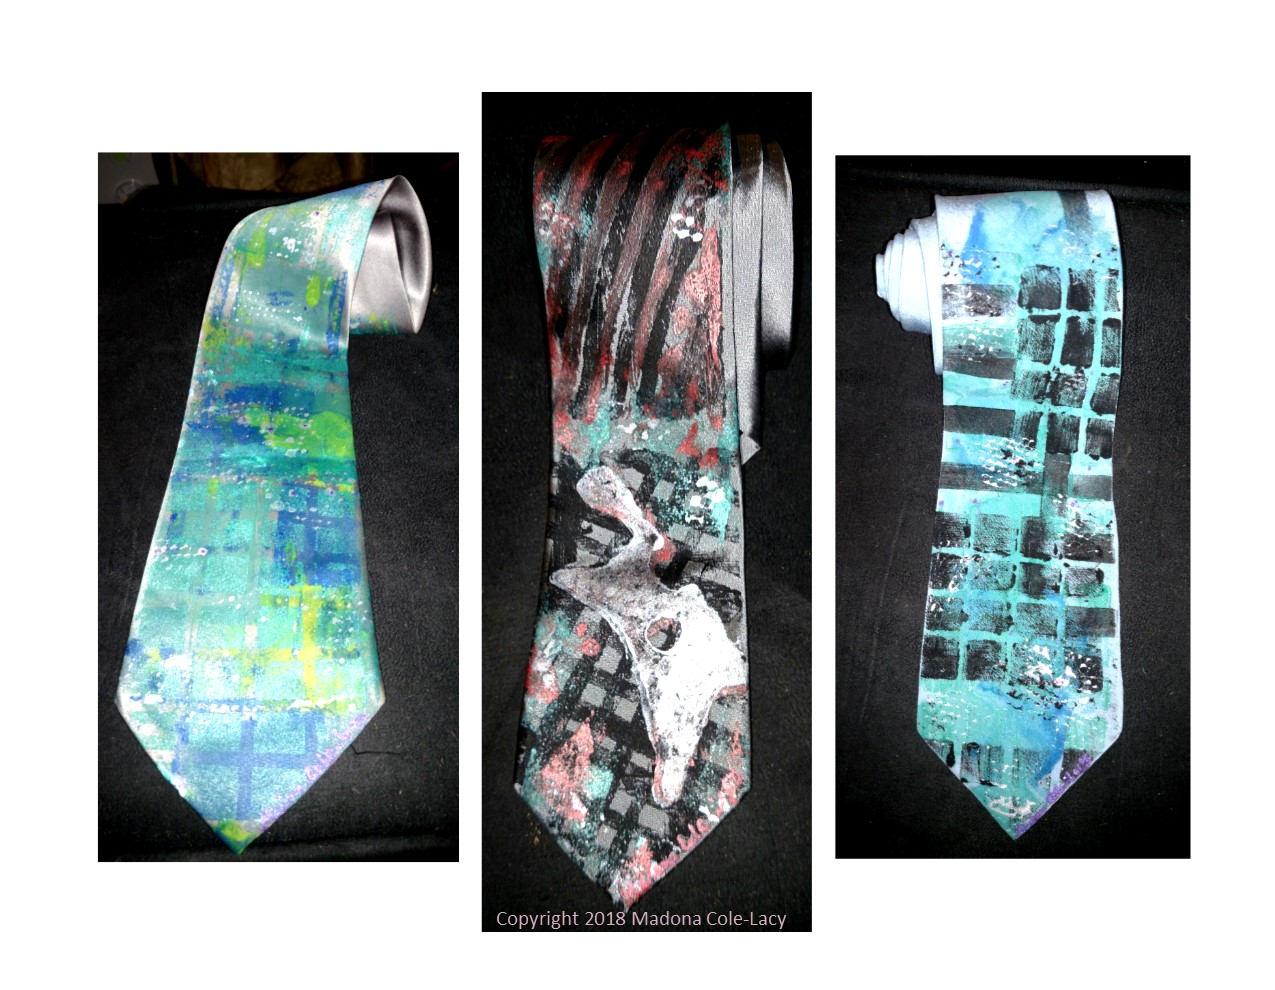 Handcrafted silk neckties